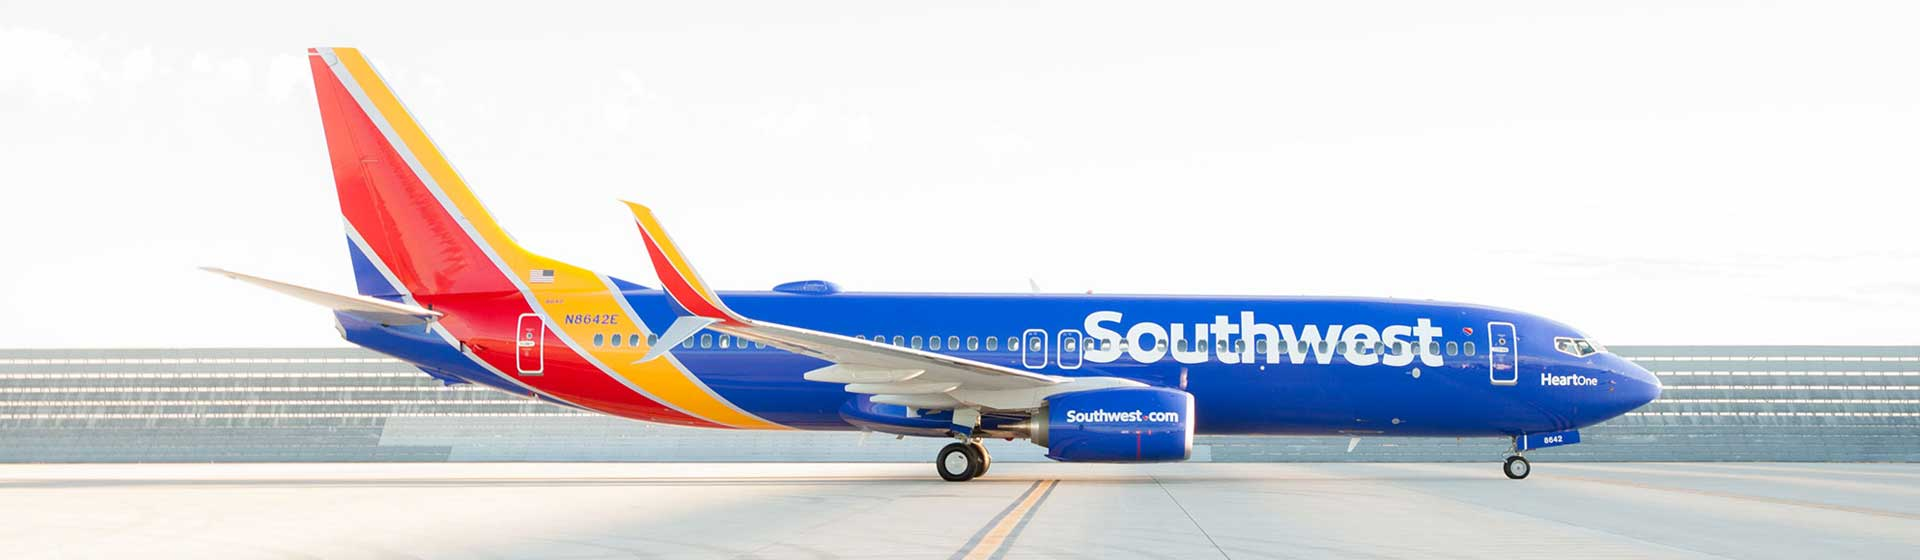 Southwest Hikes Fee for Early Boarding, Better Seats - FareCompare